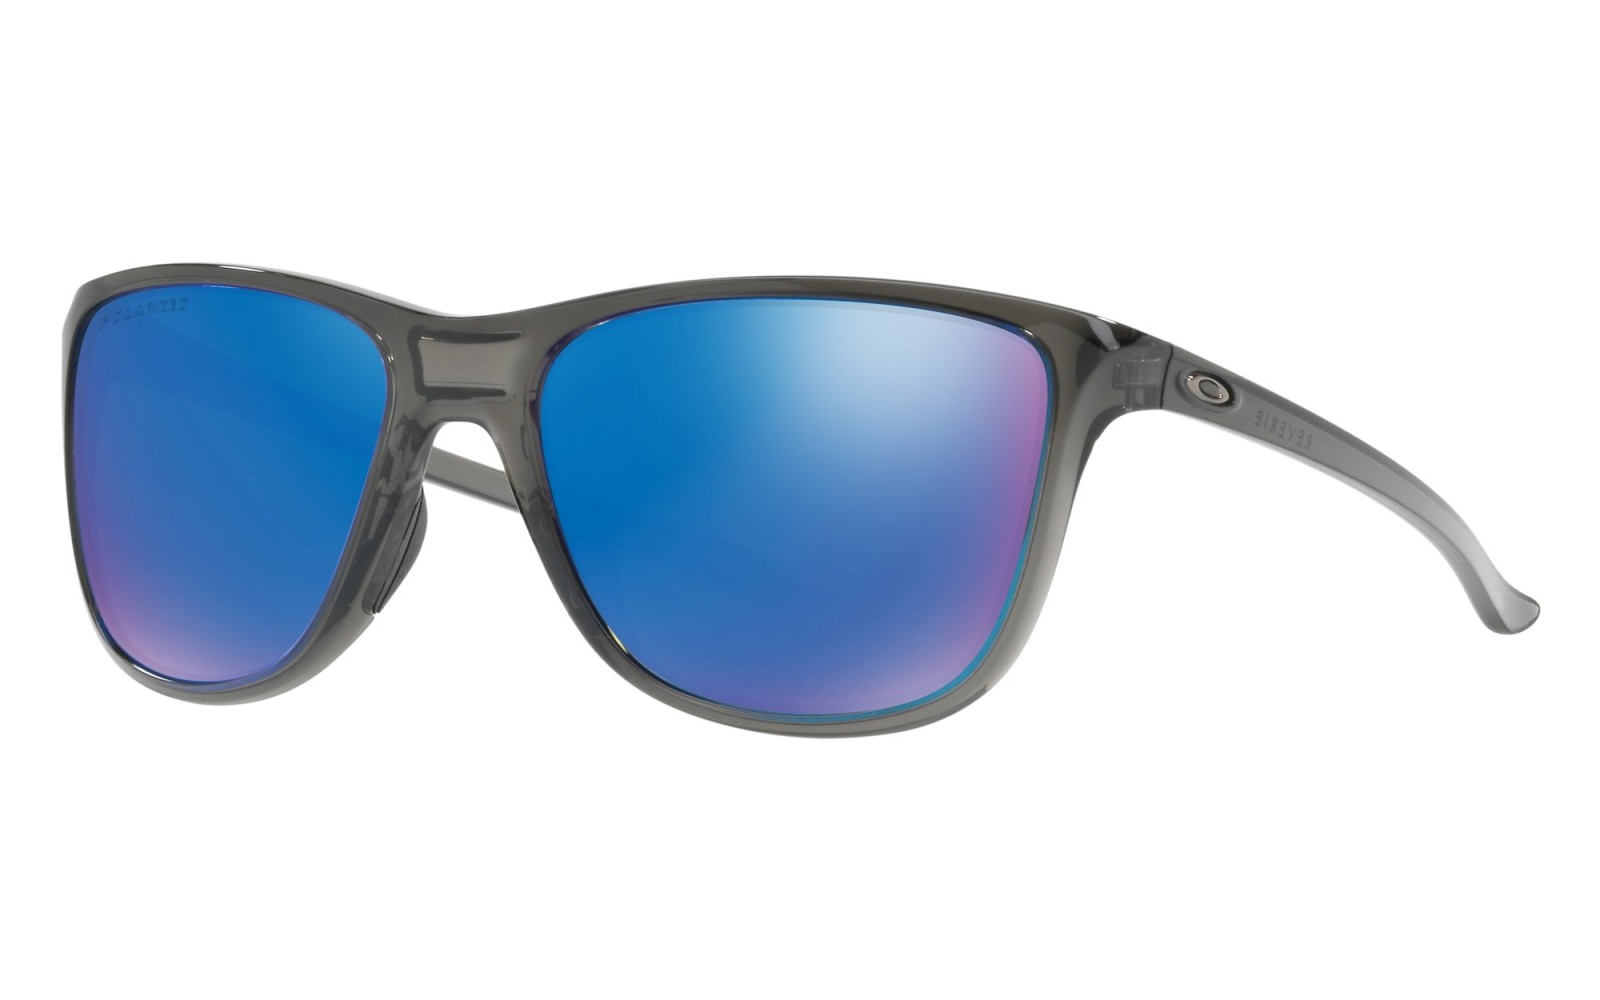 Oakley Reverie - Grey Smoke / Sapphire Iridium Polarized - OO9362-0655 Zonnebril